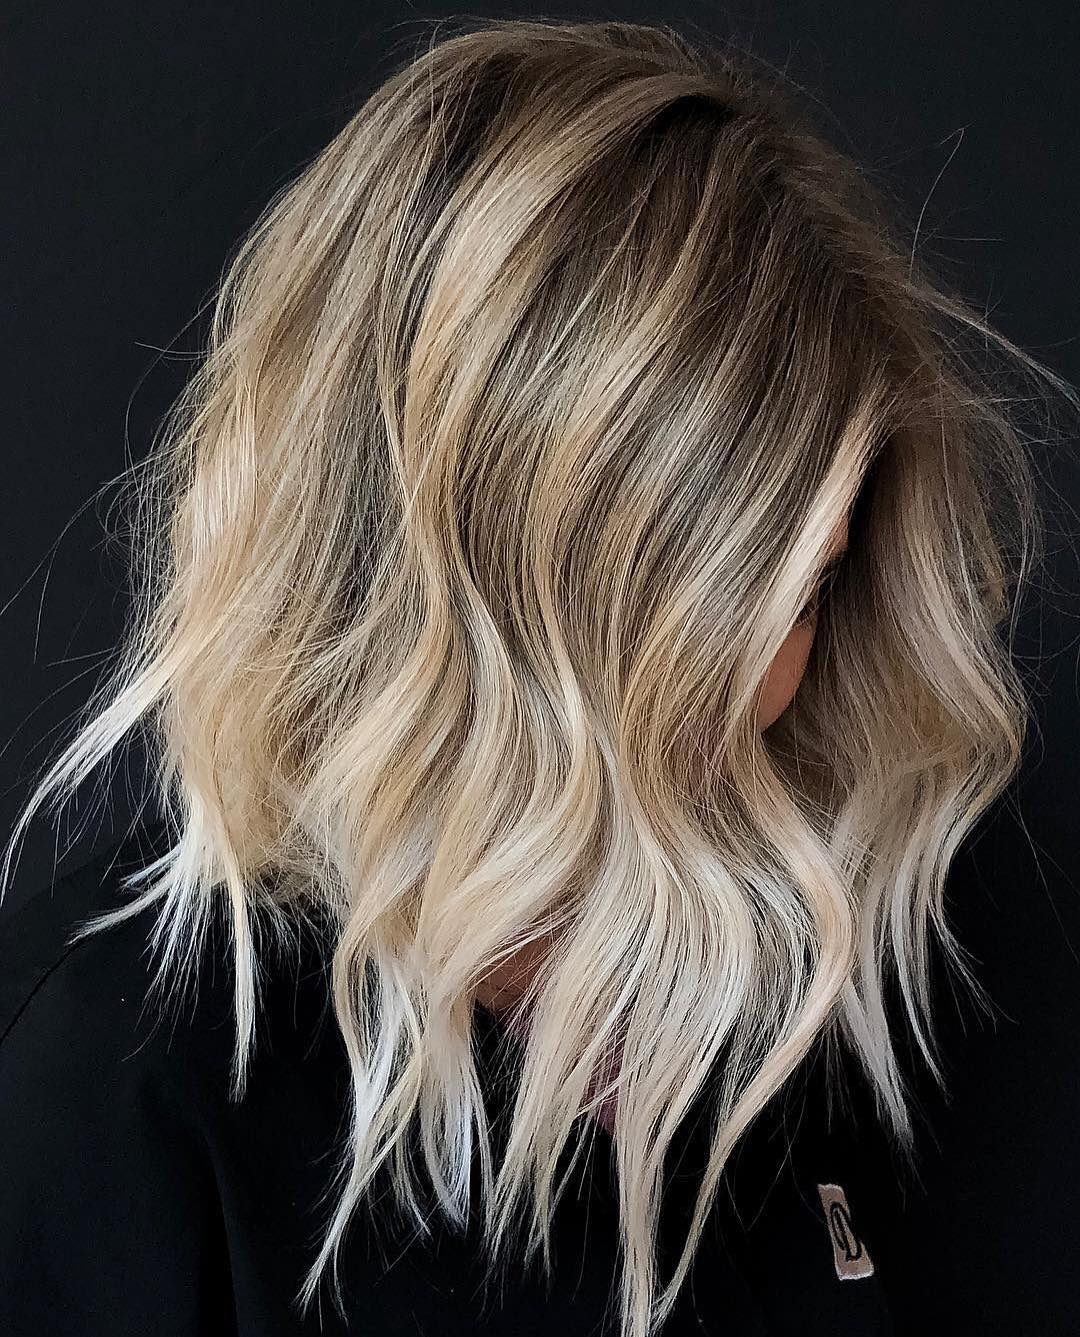 Is It Hard to Maintain Blonde Balayage